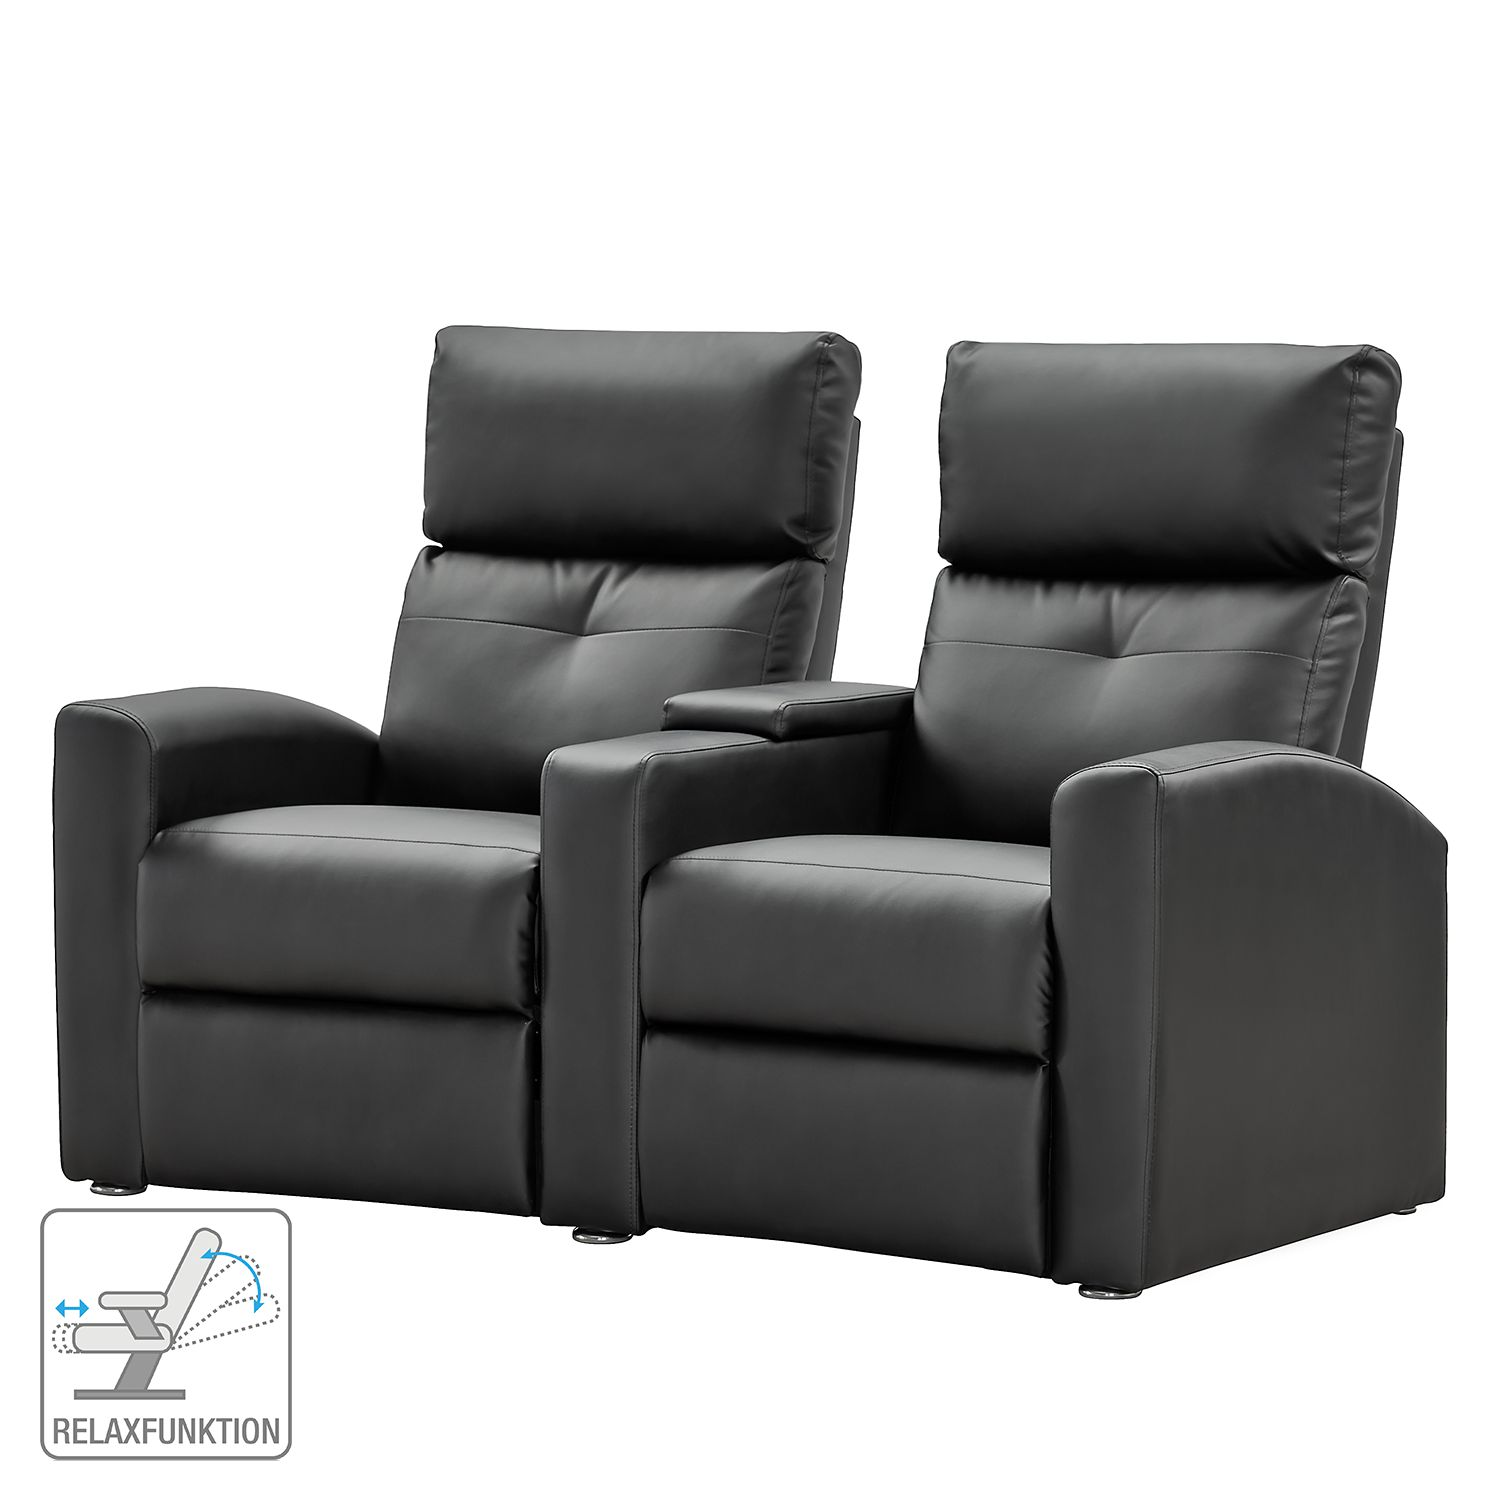 nuovoform sofa weddell 2 sitzer kunstleder schwarz relaxsofa couch lounge ebay. Black Bedroom Furniture Sets. Home Design Ideas